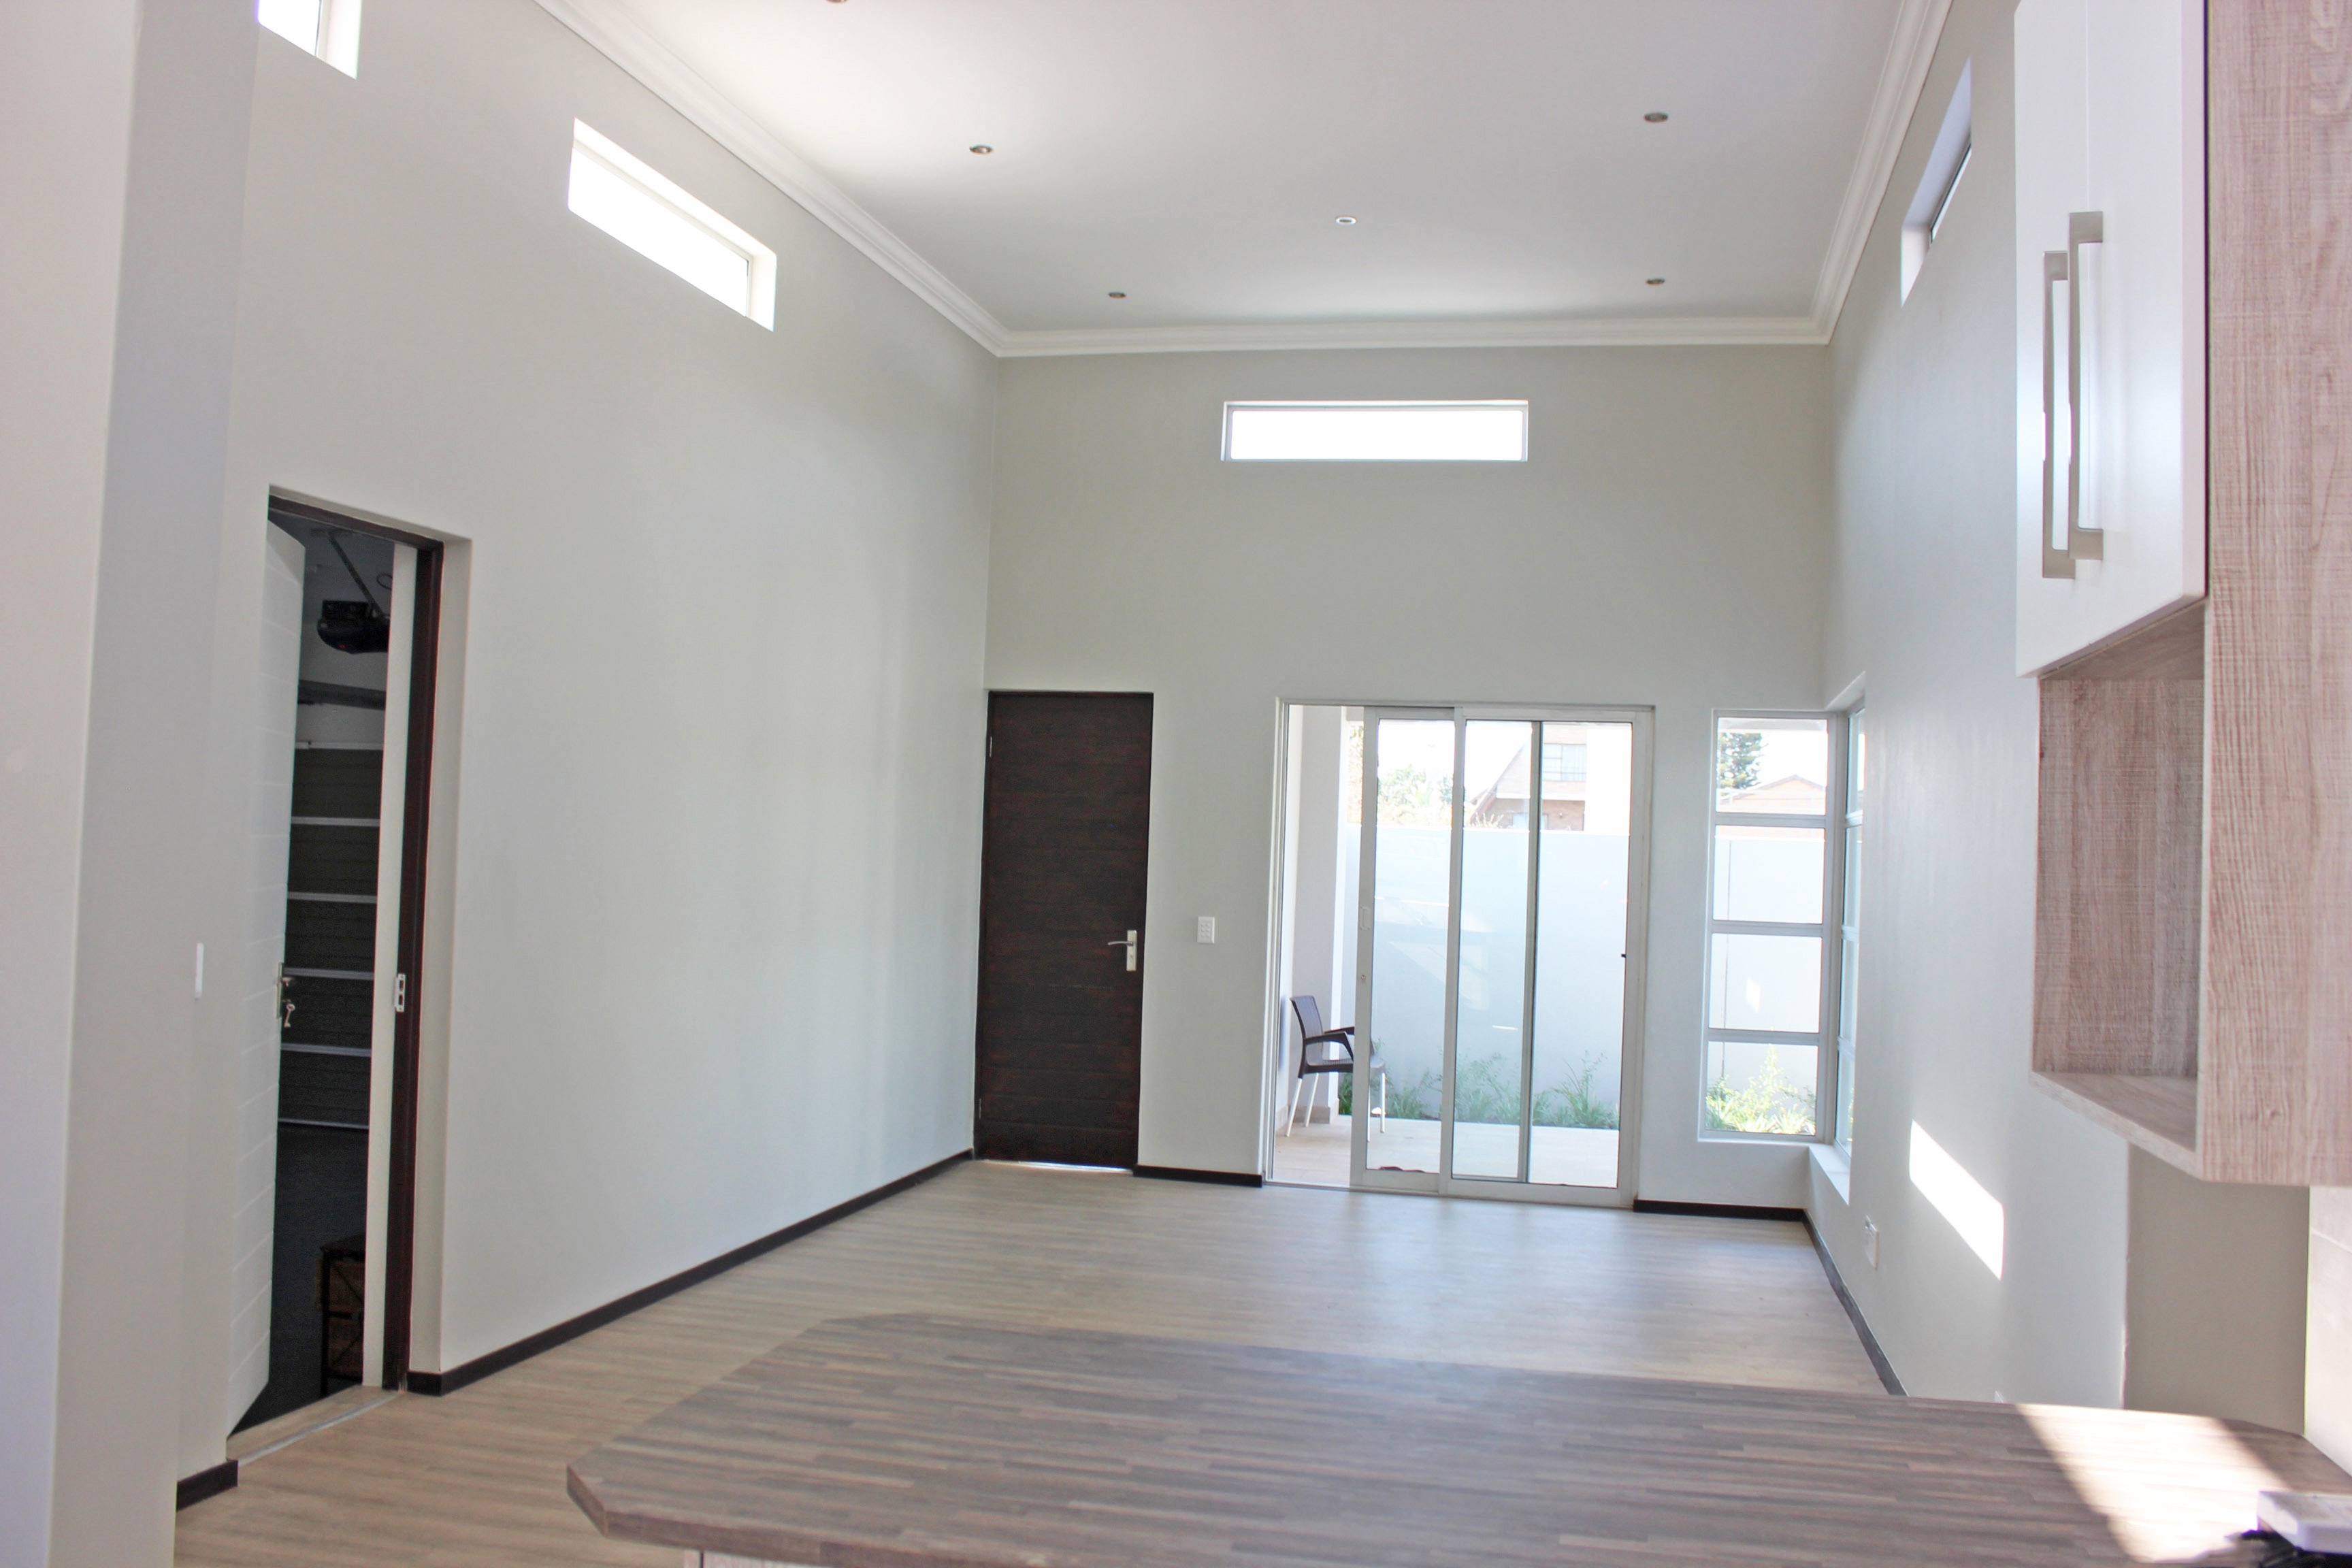 3 Bedroom Townhouse for sale in North Riding ENT0075308 : photo#7